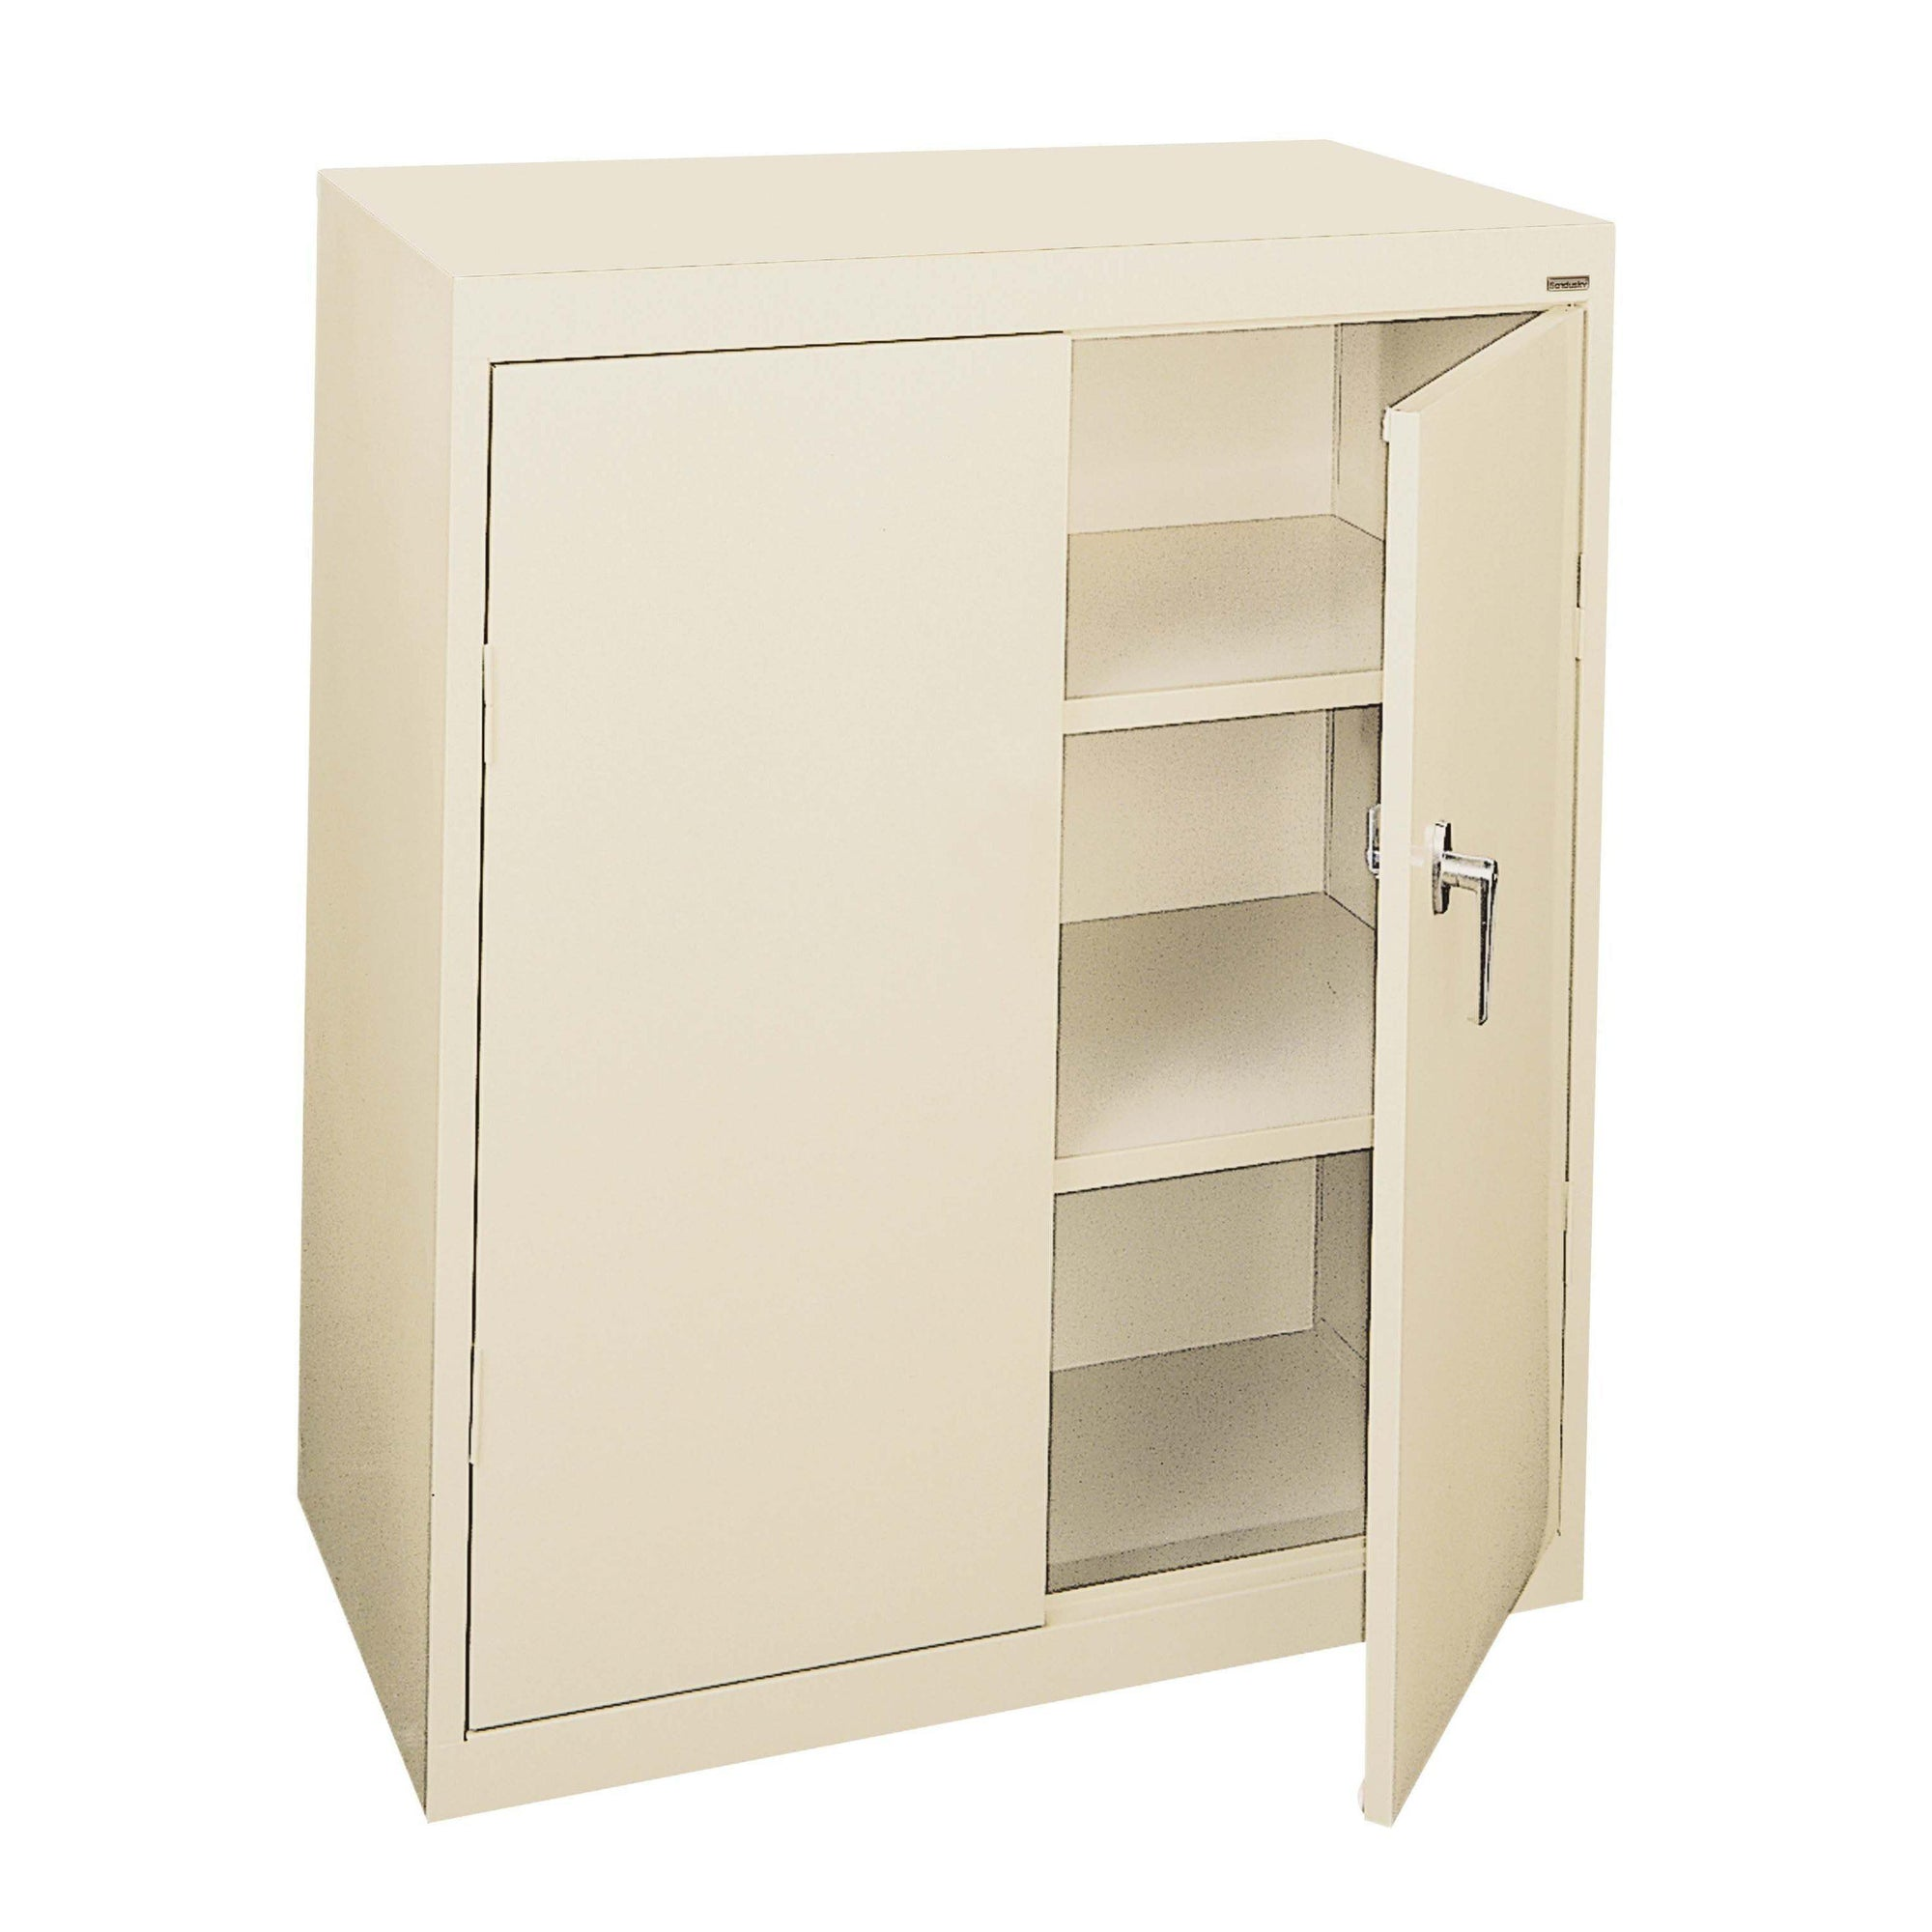 Ordinaire OfficeSource Budget Storage Cabinets Counter Height Cabinet ...